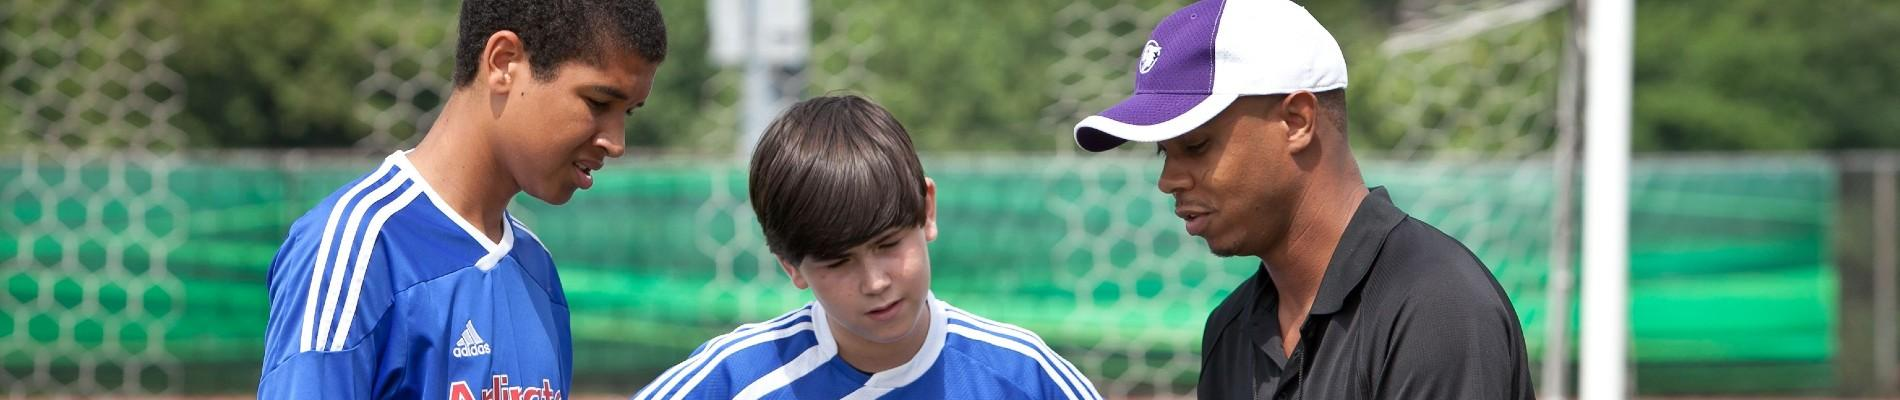 Coaching Effectively Across The Generation Gap